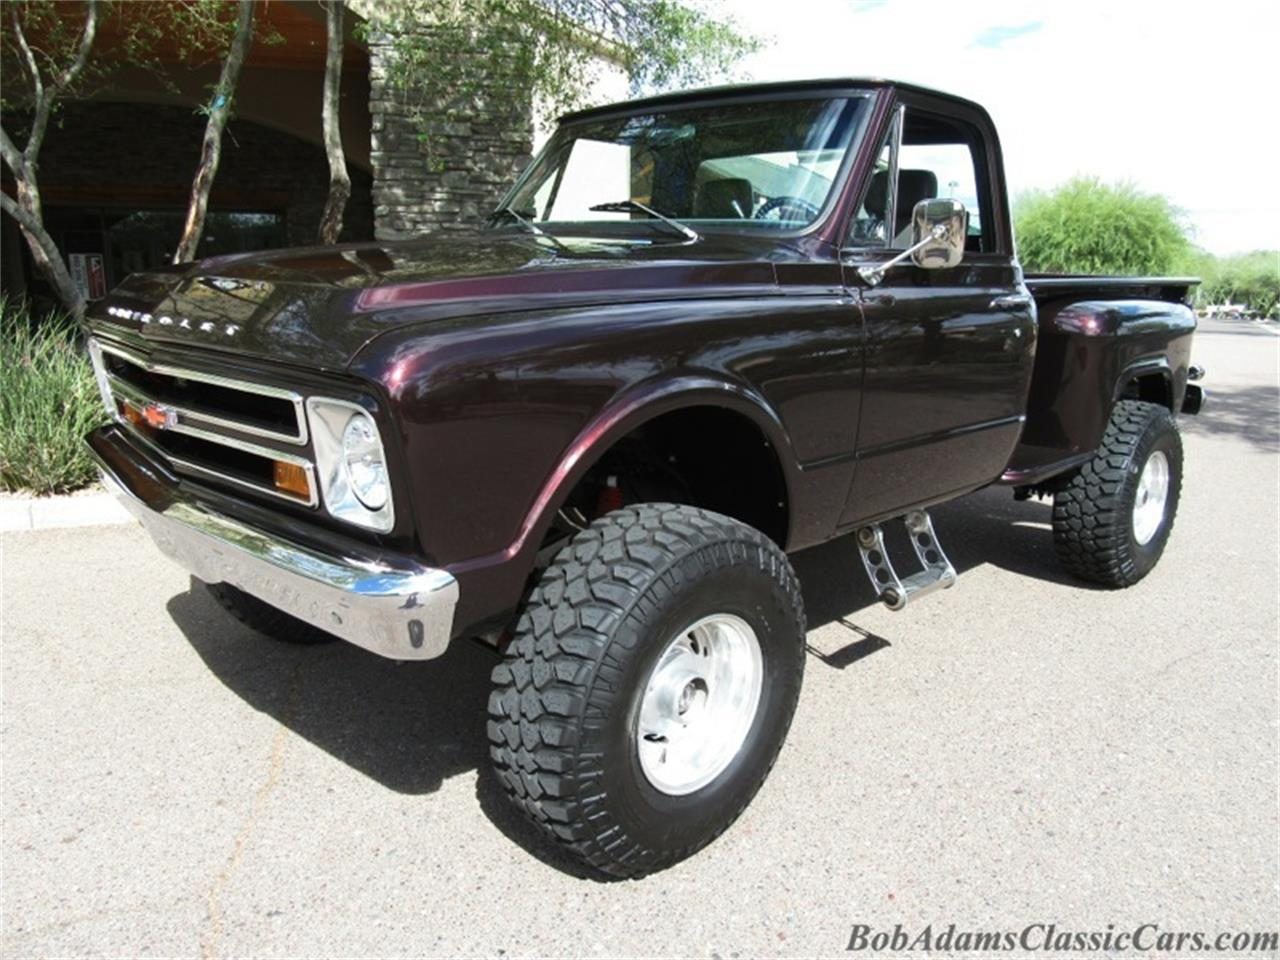 1968 Chevrolet 3 4 Ton 4x4 Pick Up For Sale Cc Chevy C10 Stepside Large Picture Of 68 Jk8y